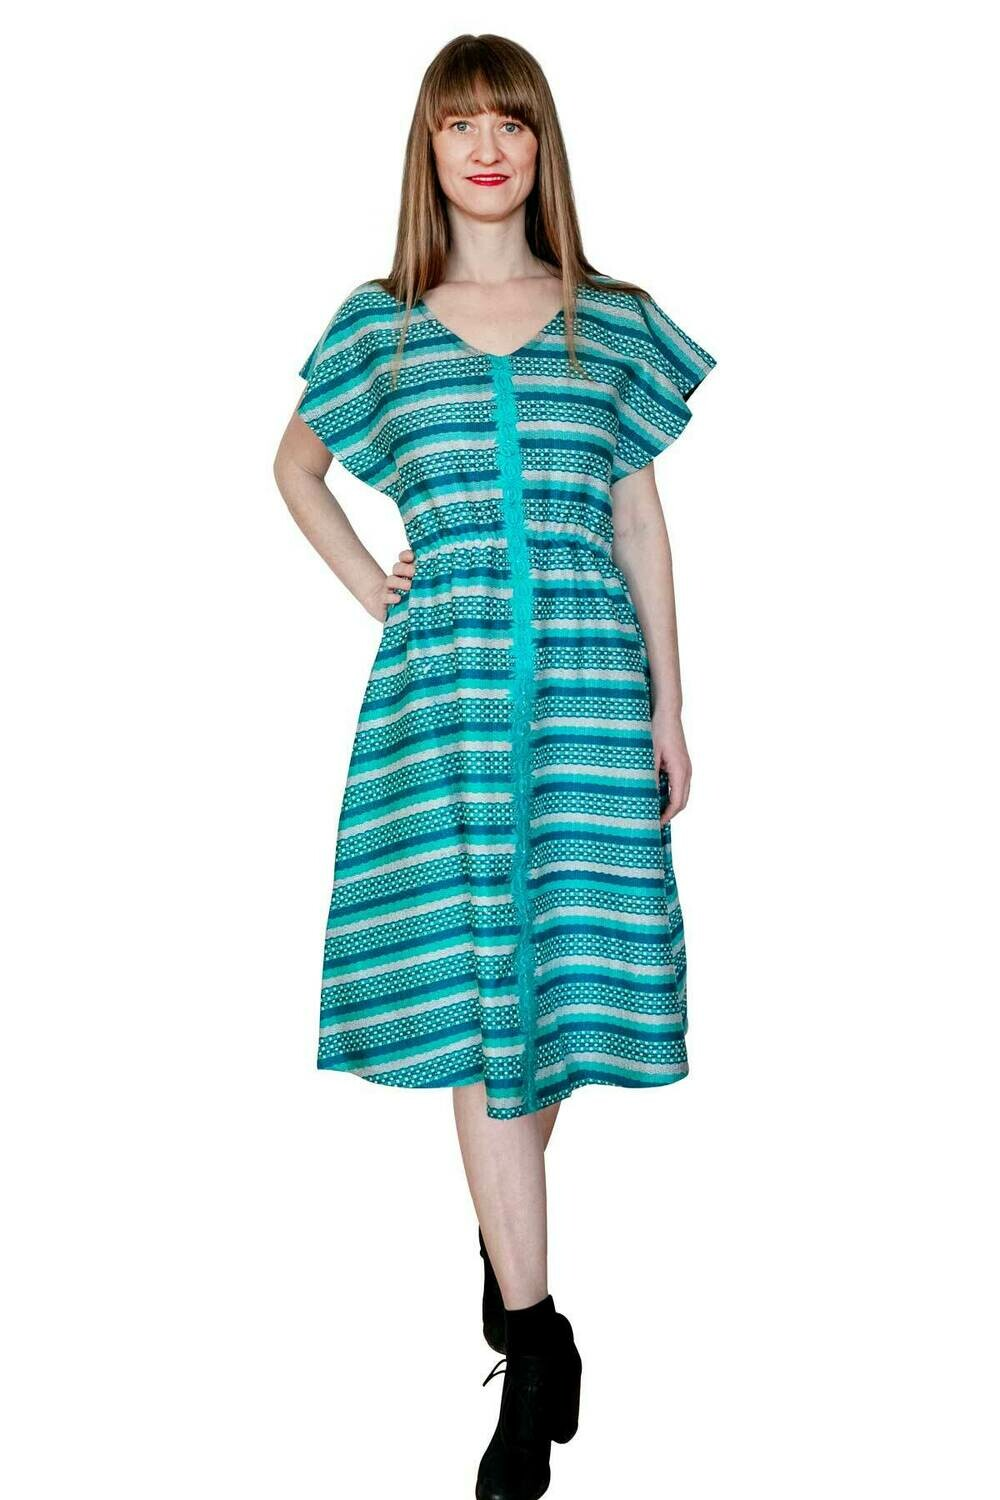 "YAKAYA Designer Kleid ""Indra"" Ethnic Dress Ikat Boho"